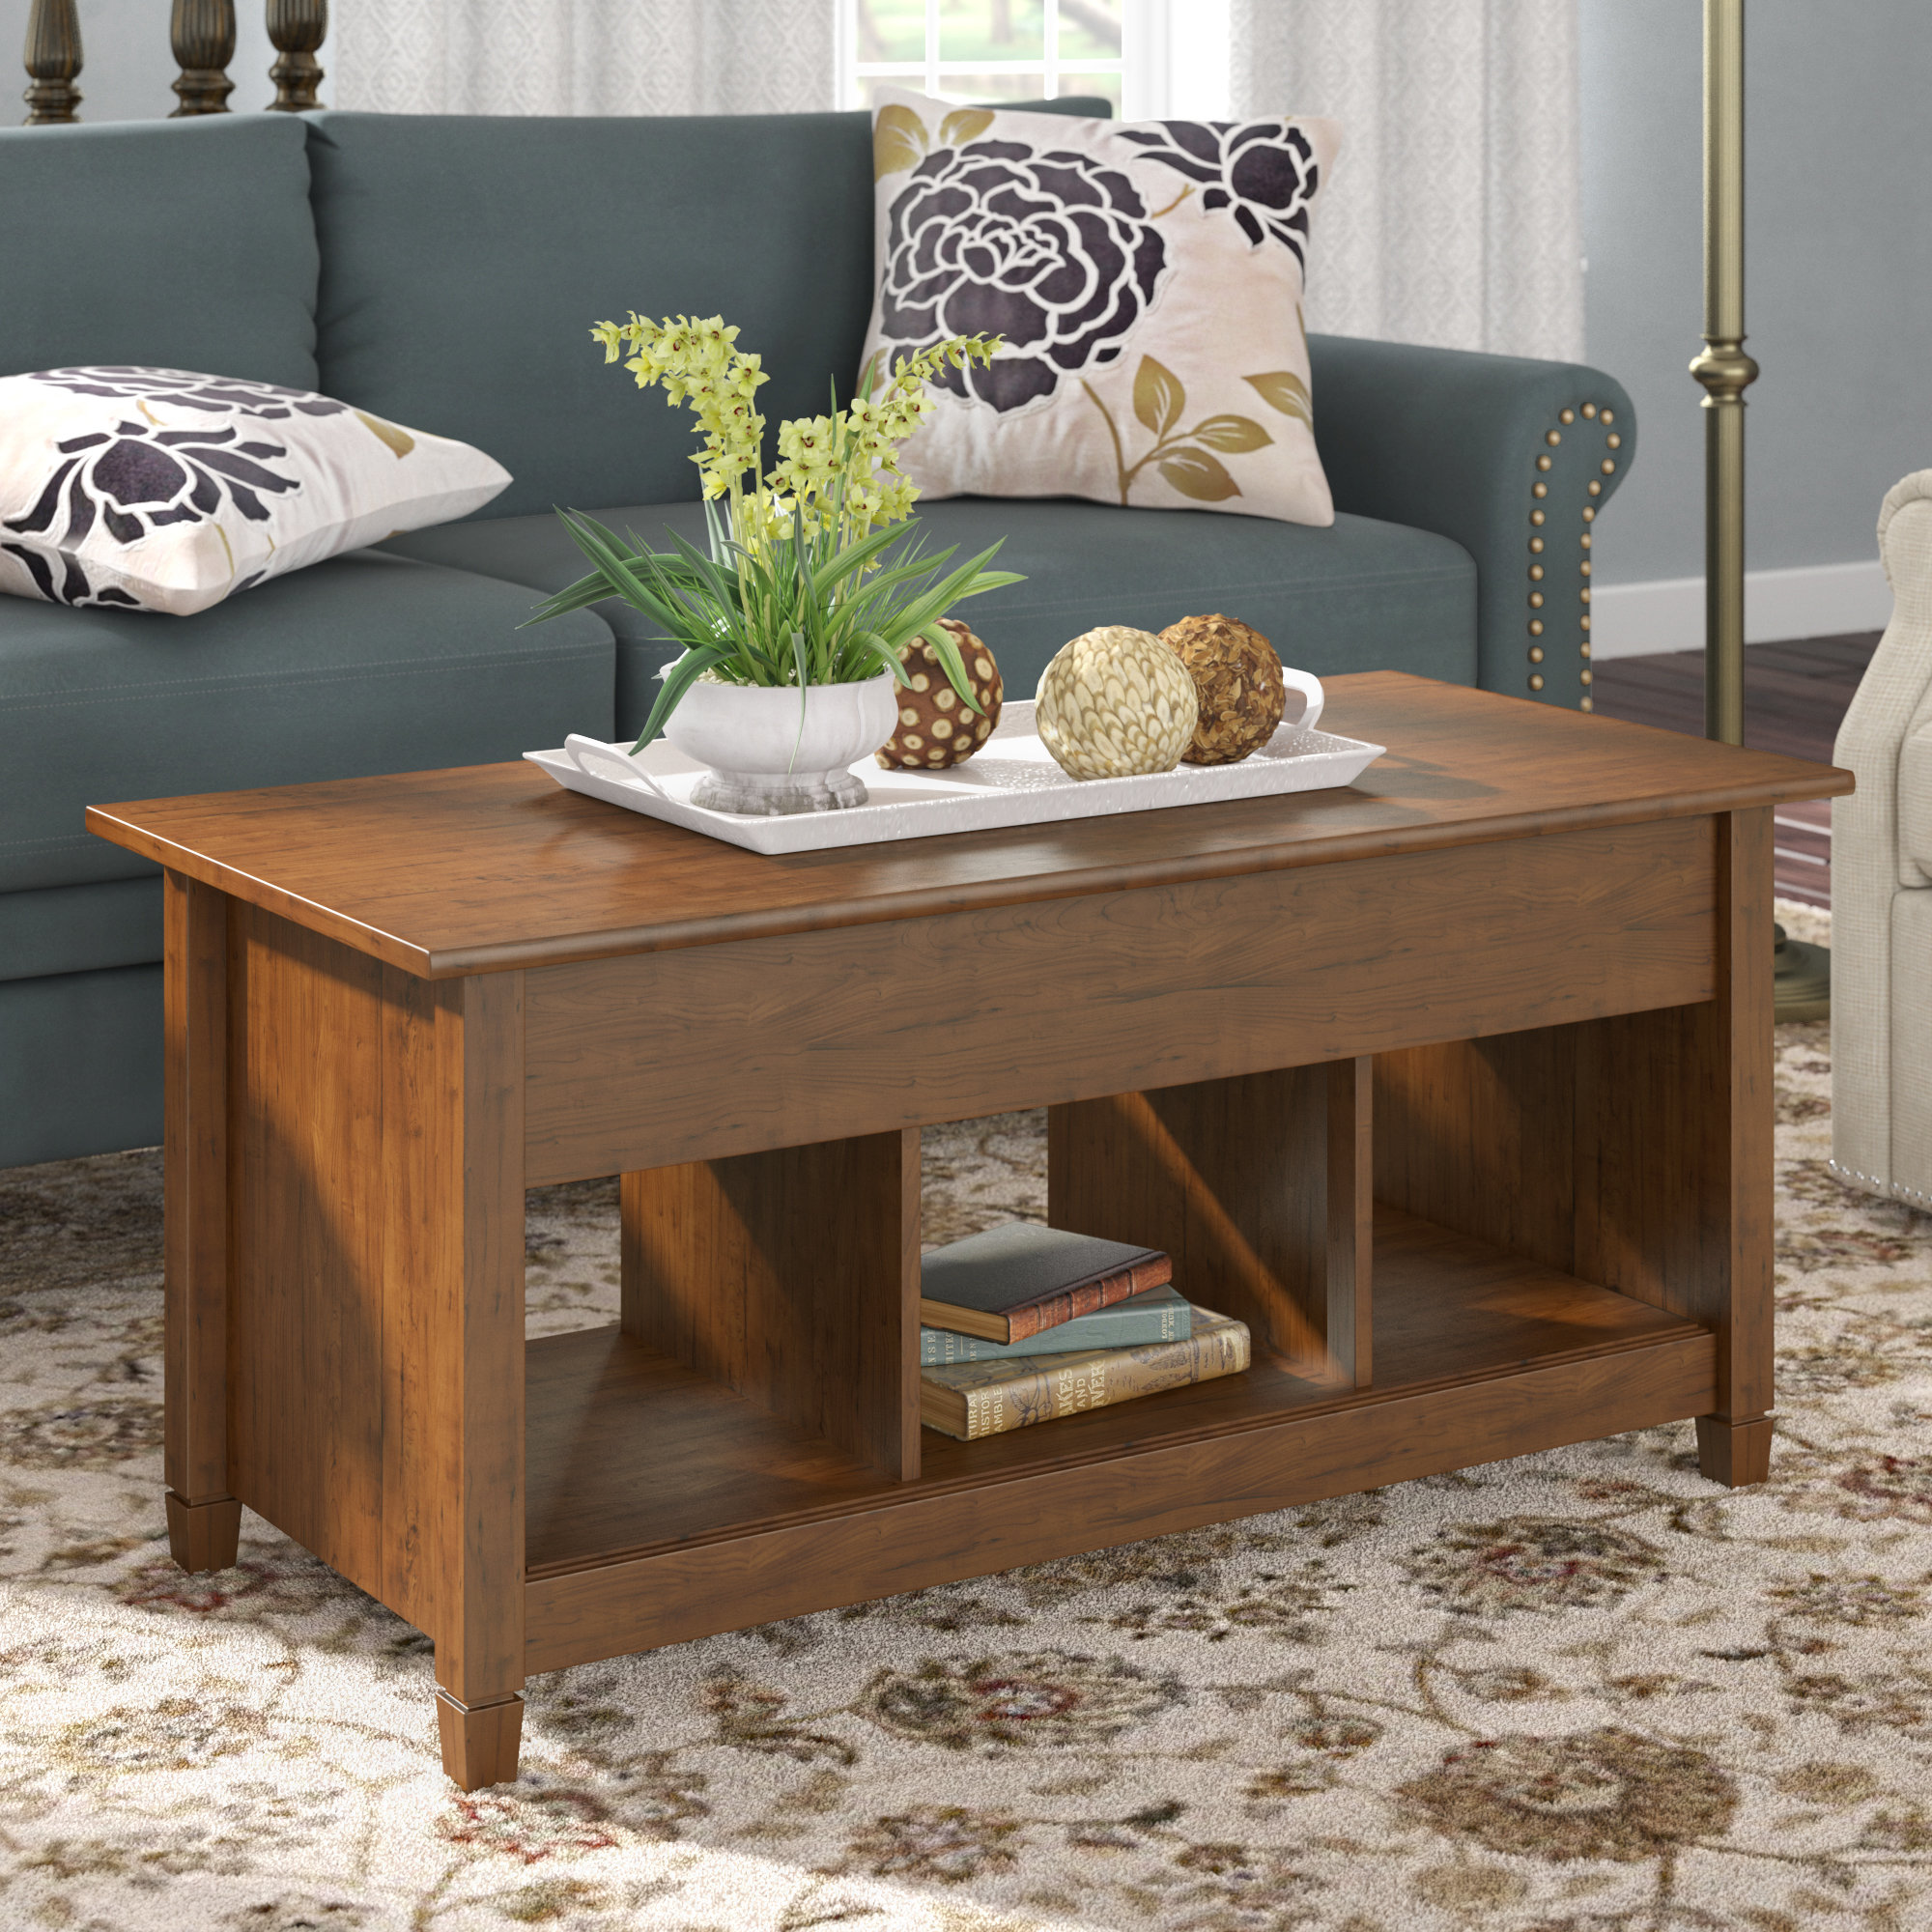 antique coffee table lamantia lift top the eryn accent quickview dining room bar buffet west elm lighting grey bedroom lamps gold legs farmhouse style side small and chairs cool